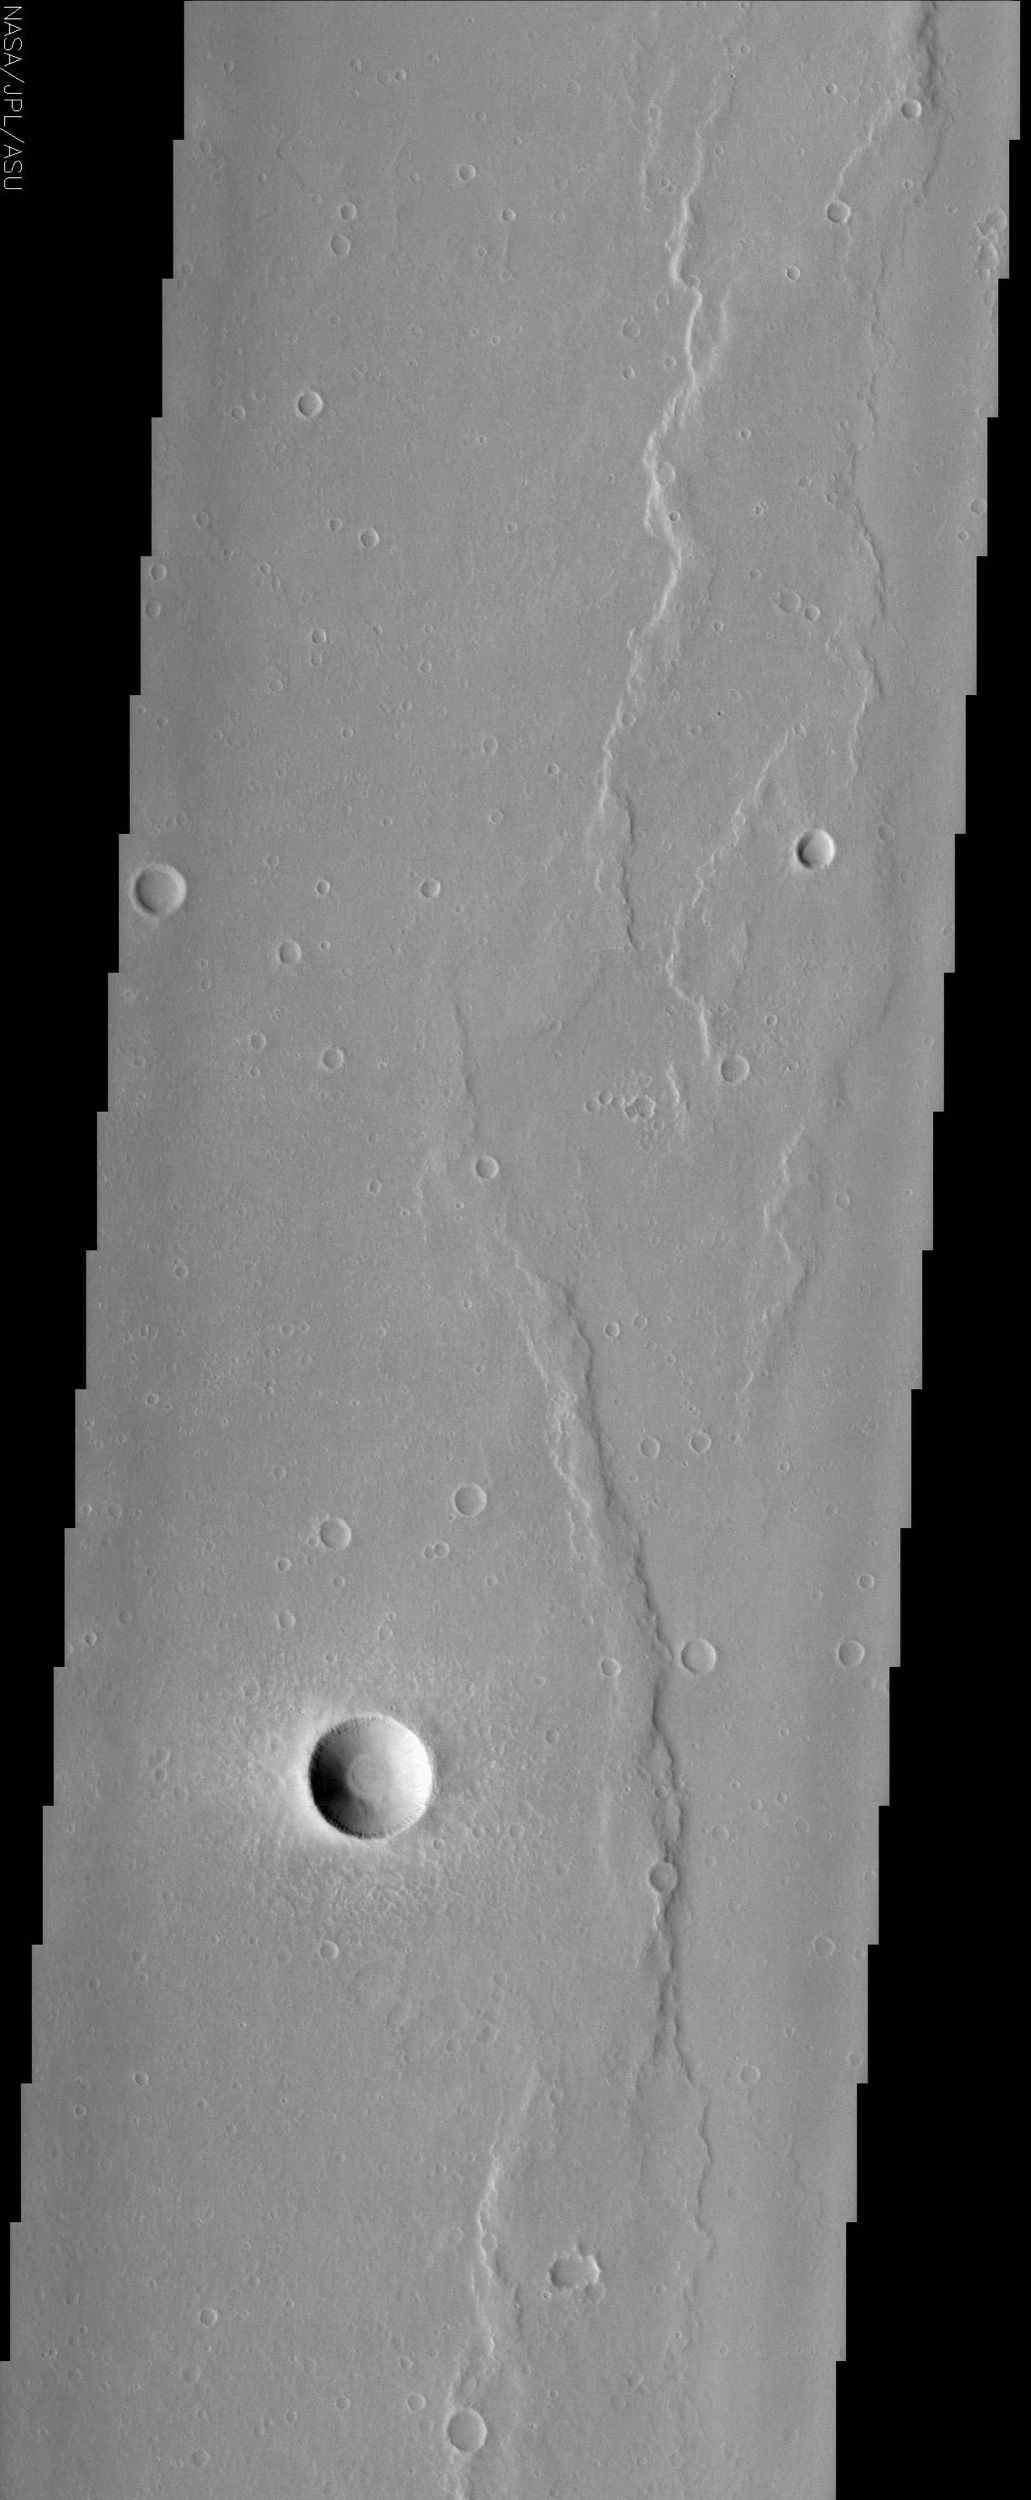 This NASA Mars Odyssey image is of the ridged plains of Lunae Planum in the northern hemisphere of Mars. Wrinkle ridges, a very common landform on Mars, Mercury, Venus, and the Moon, are found mostly along the eastern side of the image.